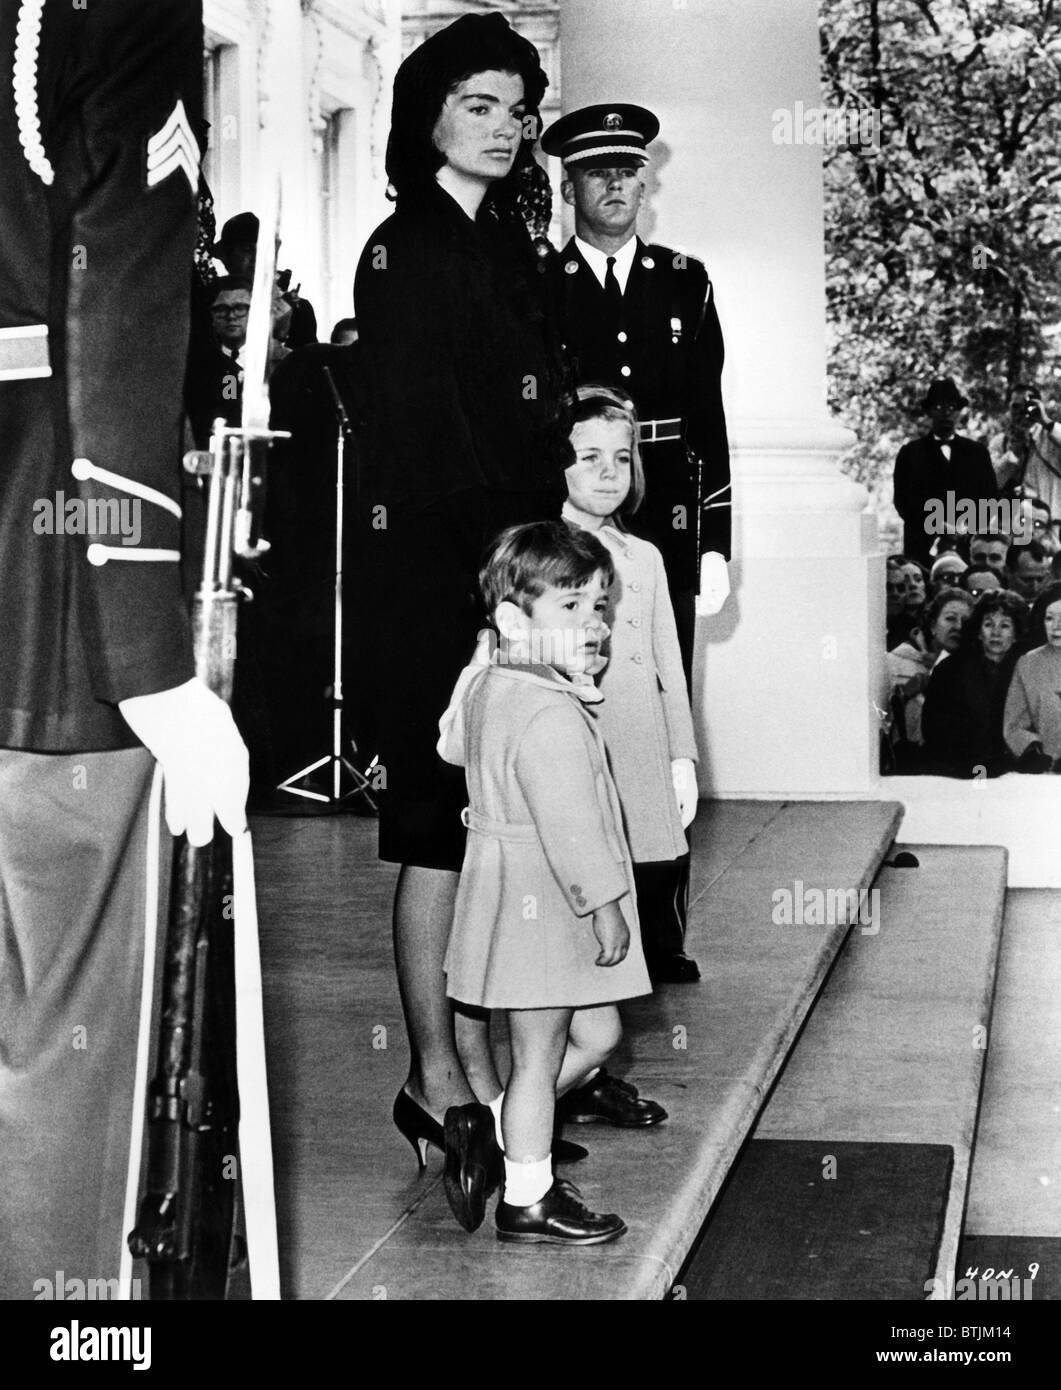 jacqueline kennedy avec ses enfants john f kennedy jr et caroline kennedy dans une sc ne du. Black Bedroom Furniture Sets. Home Design Ideas